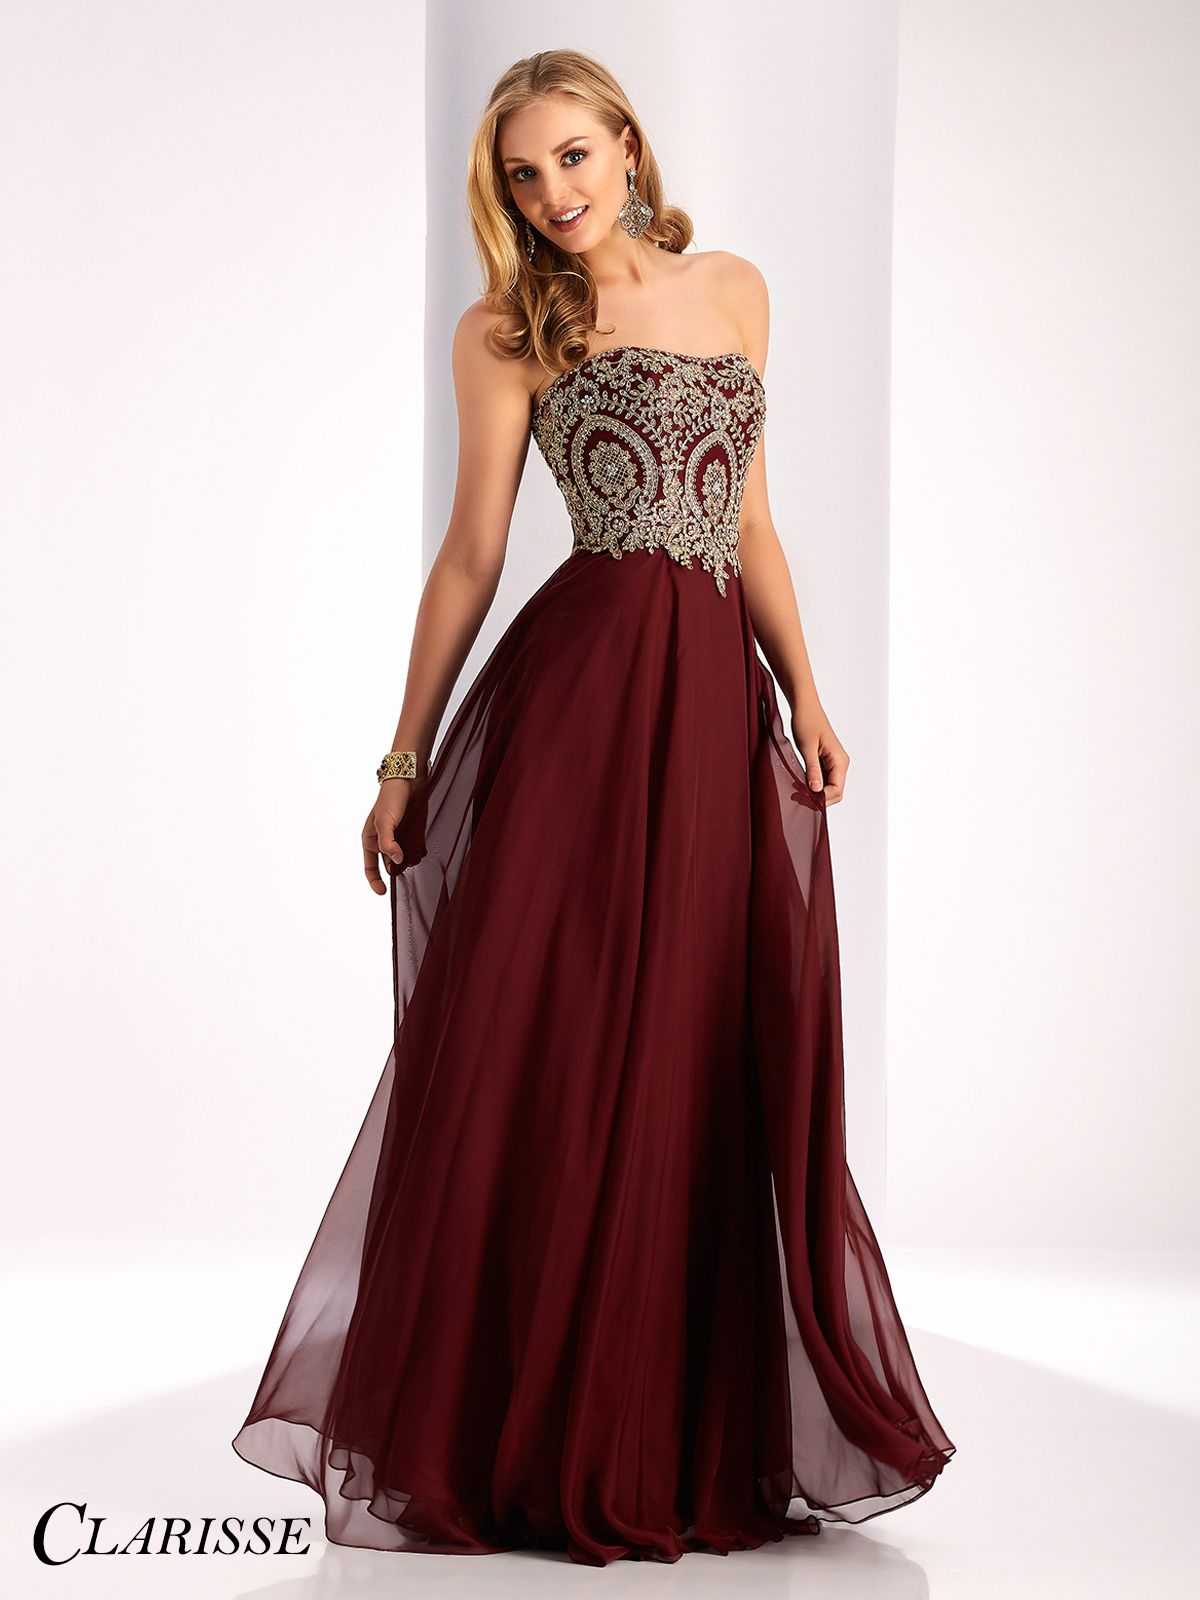 Aline strapless prom dress colors aline dresses